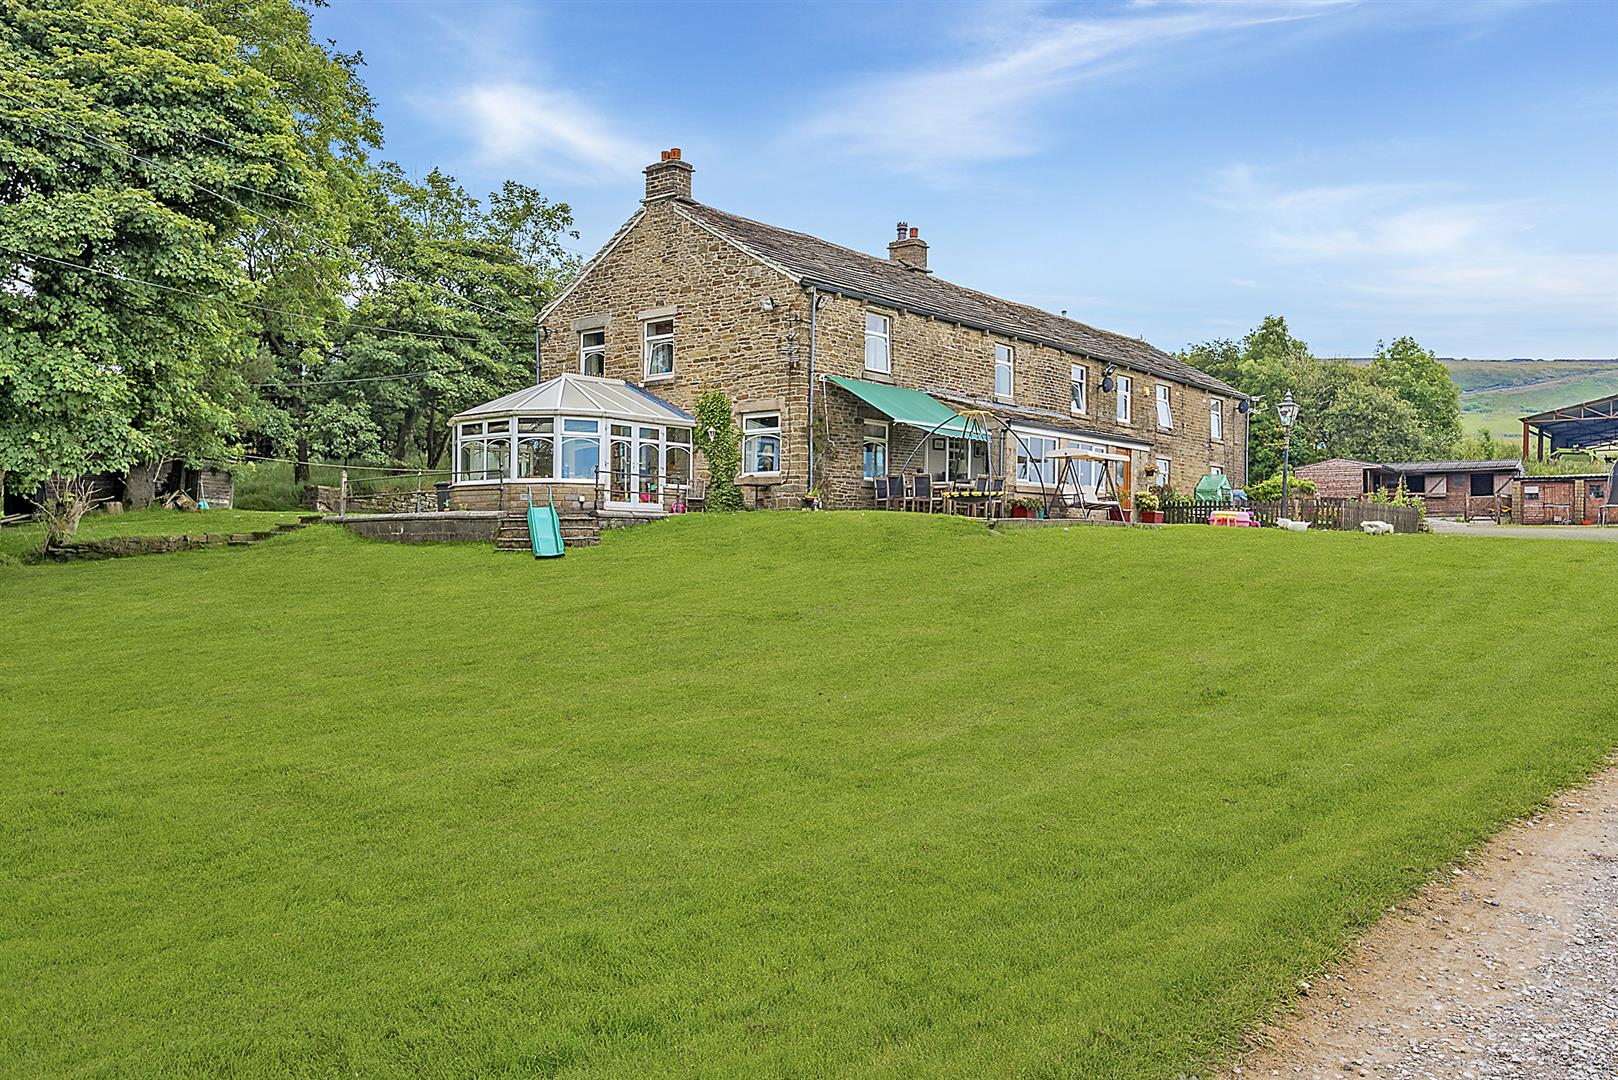 9 bedroom house For Sale in Bolton - Main Image.